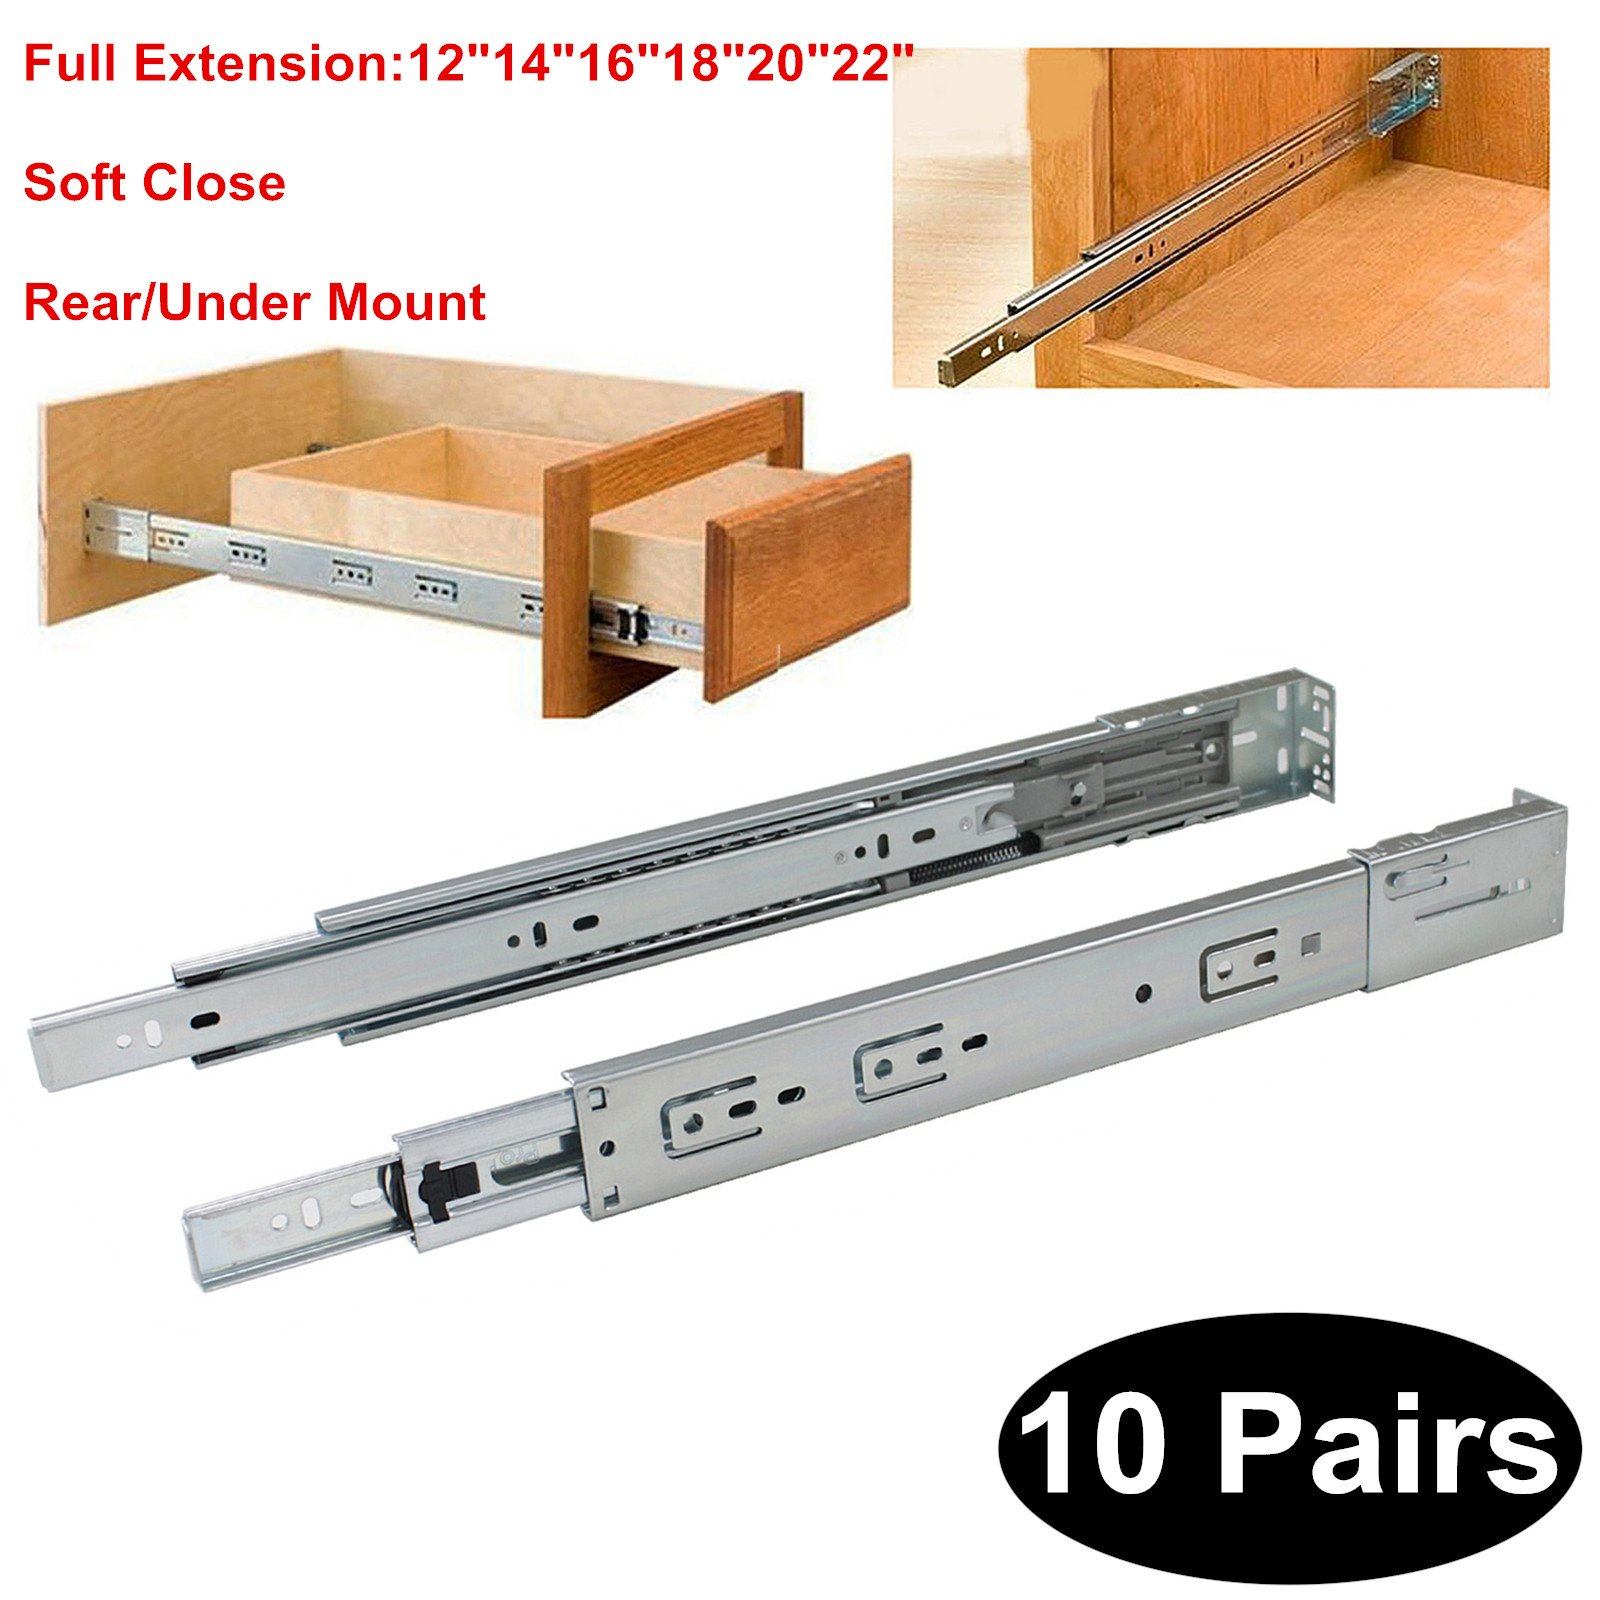 10 Pairs Soft Close Rear/Under Mount Drawer Slides Glides DHH32-16 inch Full Extension 3-Folds Ball Bearing;100-pound Capacity